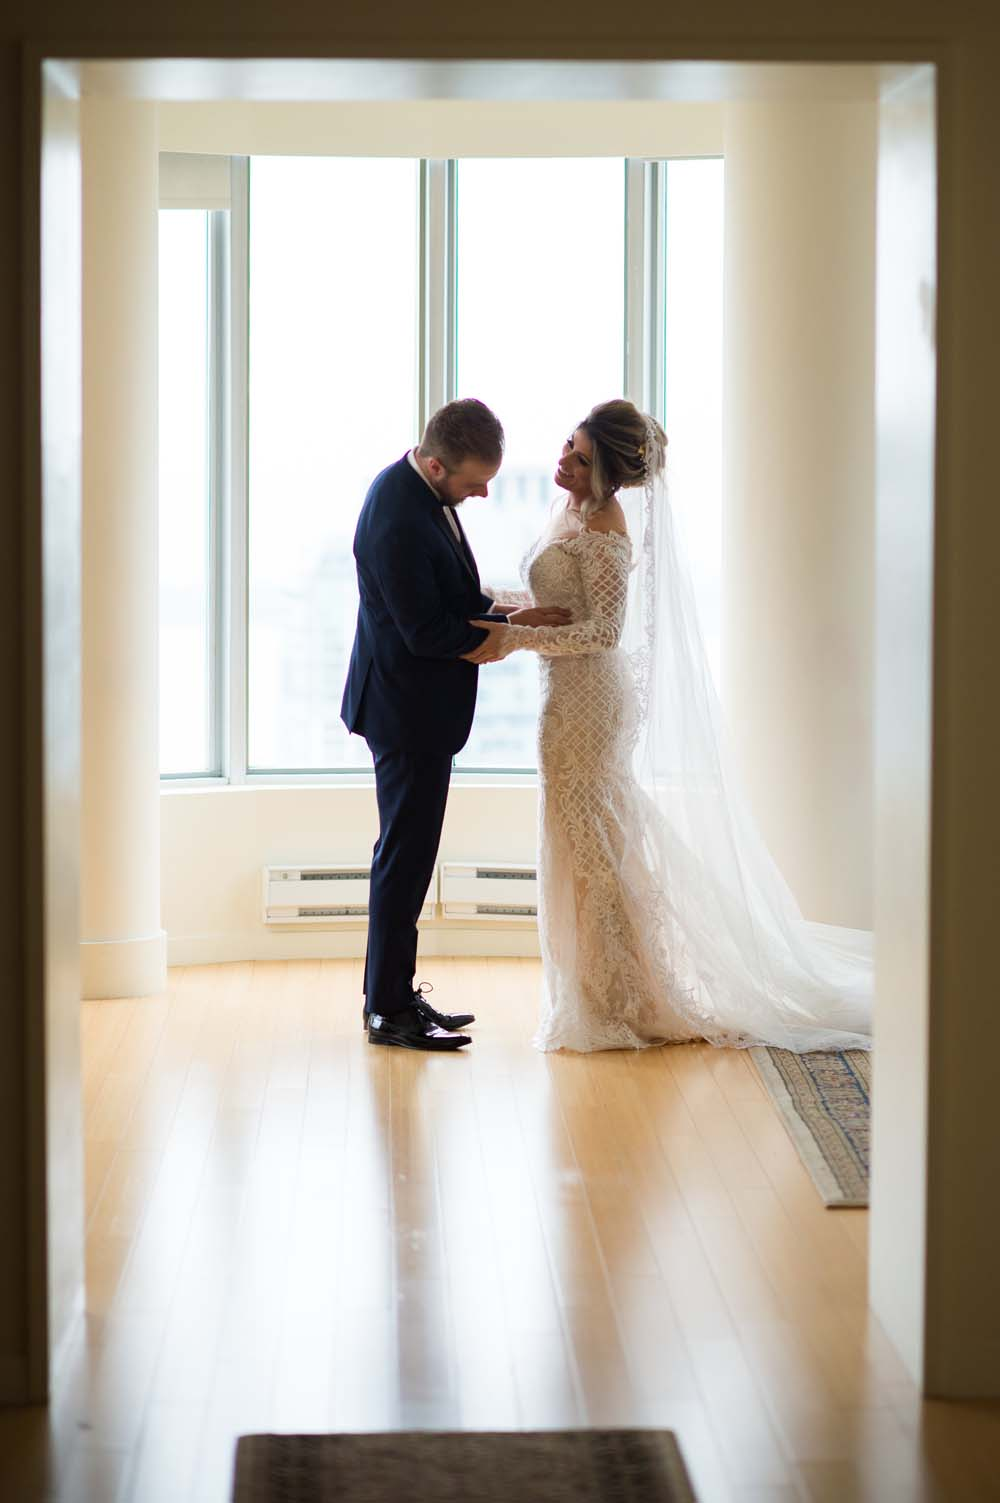 A Classic Vintage inspired Wedding at the One King West in Toronto - Groom seeing Bride for First Time